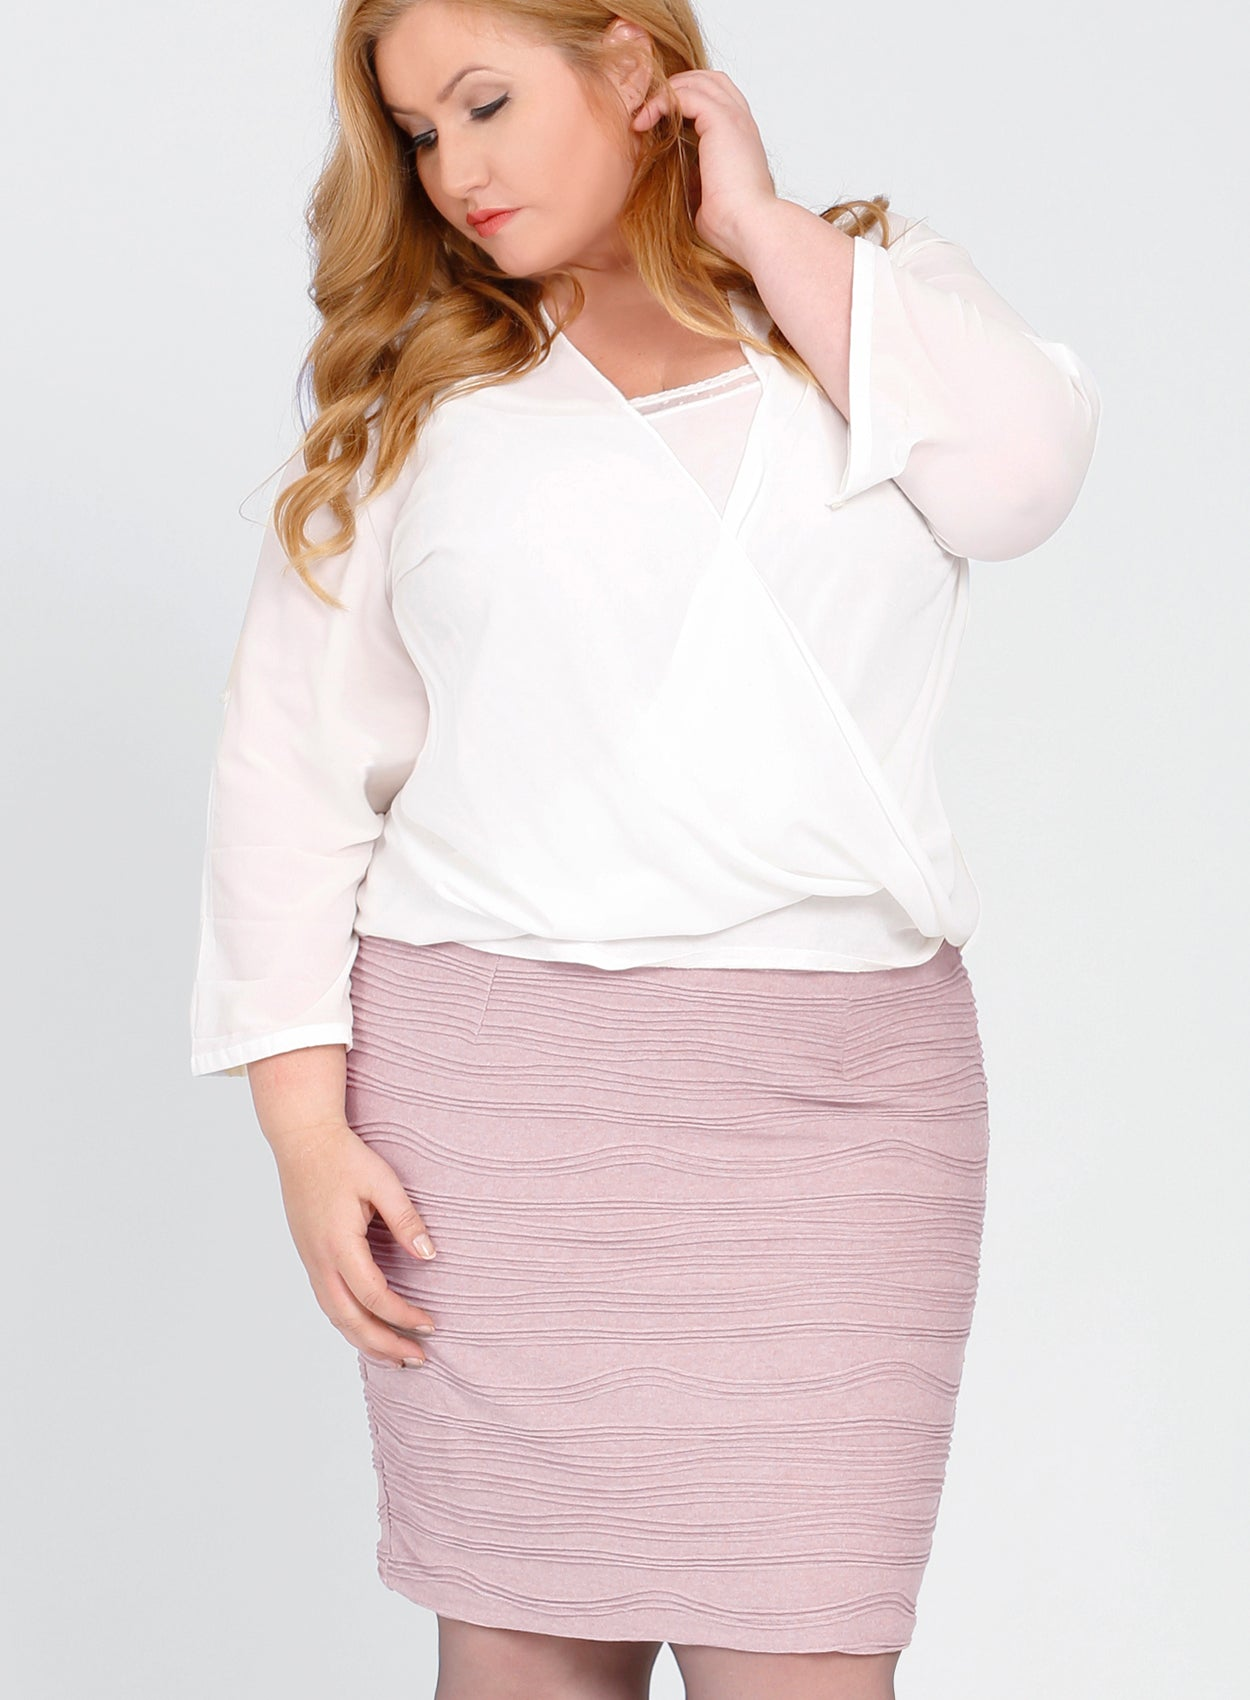 NICOLA Plus Size Pencil Skirt